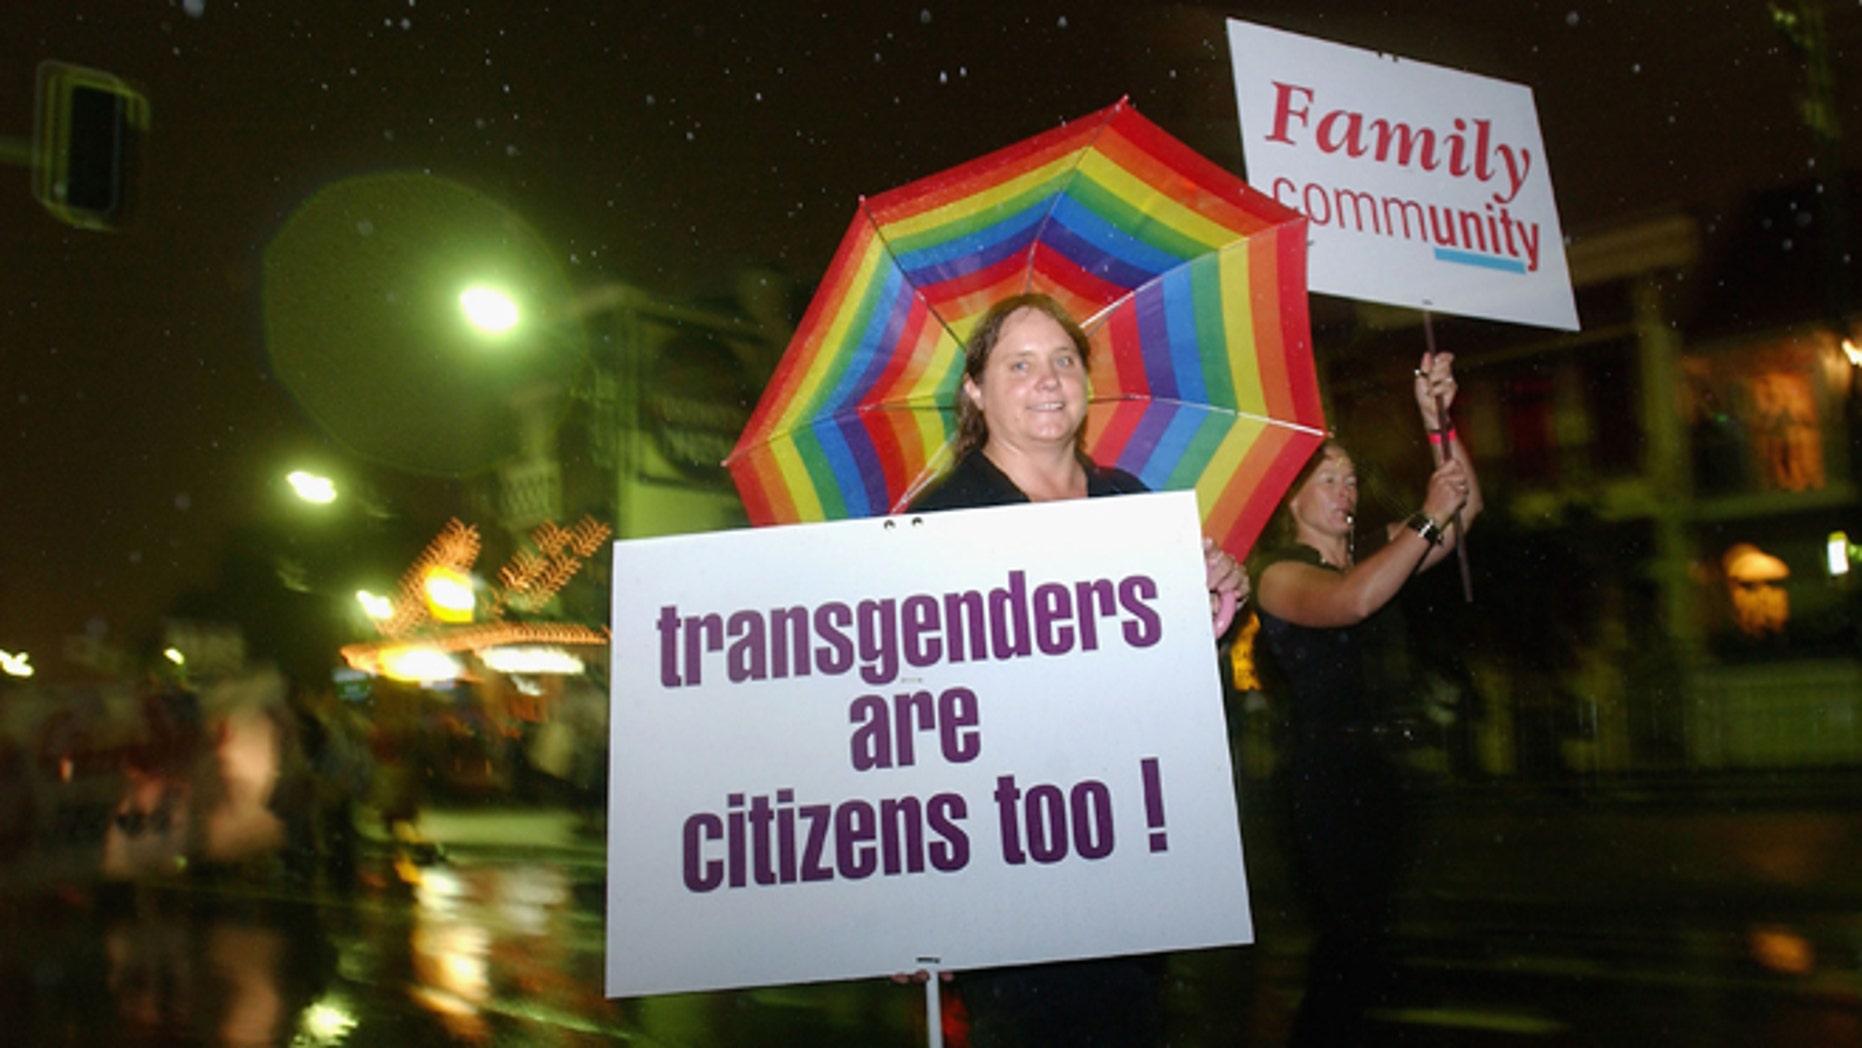 SYDNEY, AUSTRALIA - MARCH 6:  Participants march for the rights of Transgenders during the Sydney Gay and Lesbian Mardi Gras in Sydney on March 6, 2004  Sydney, Australia. (Photo by Jon Buckle/Getty Images)